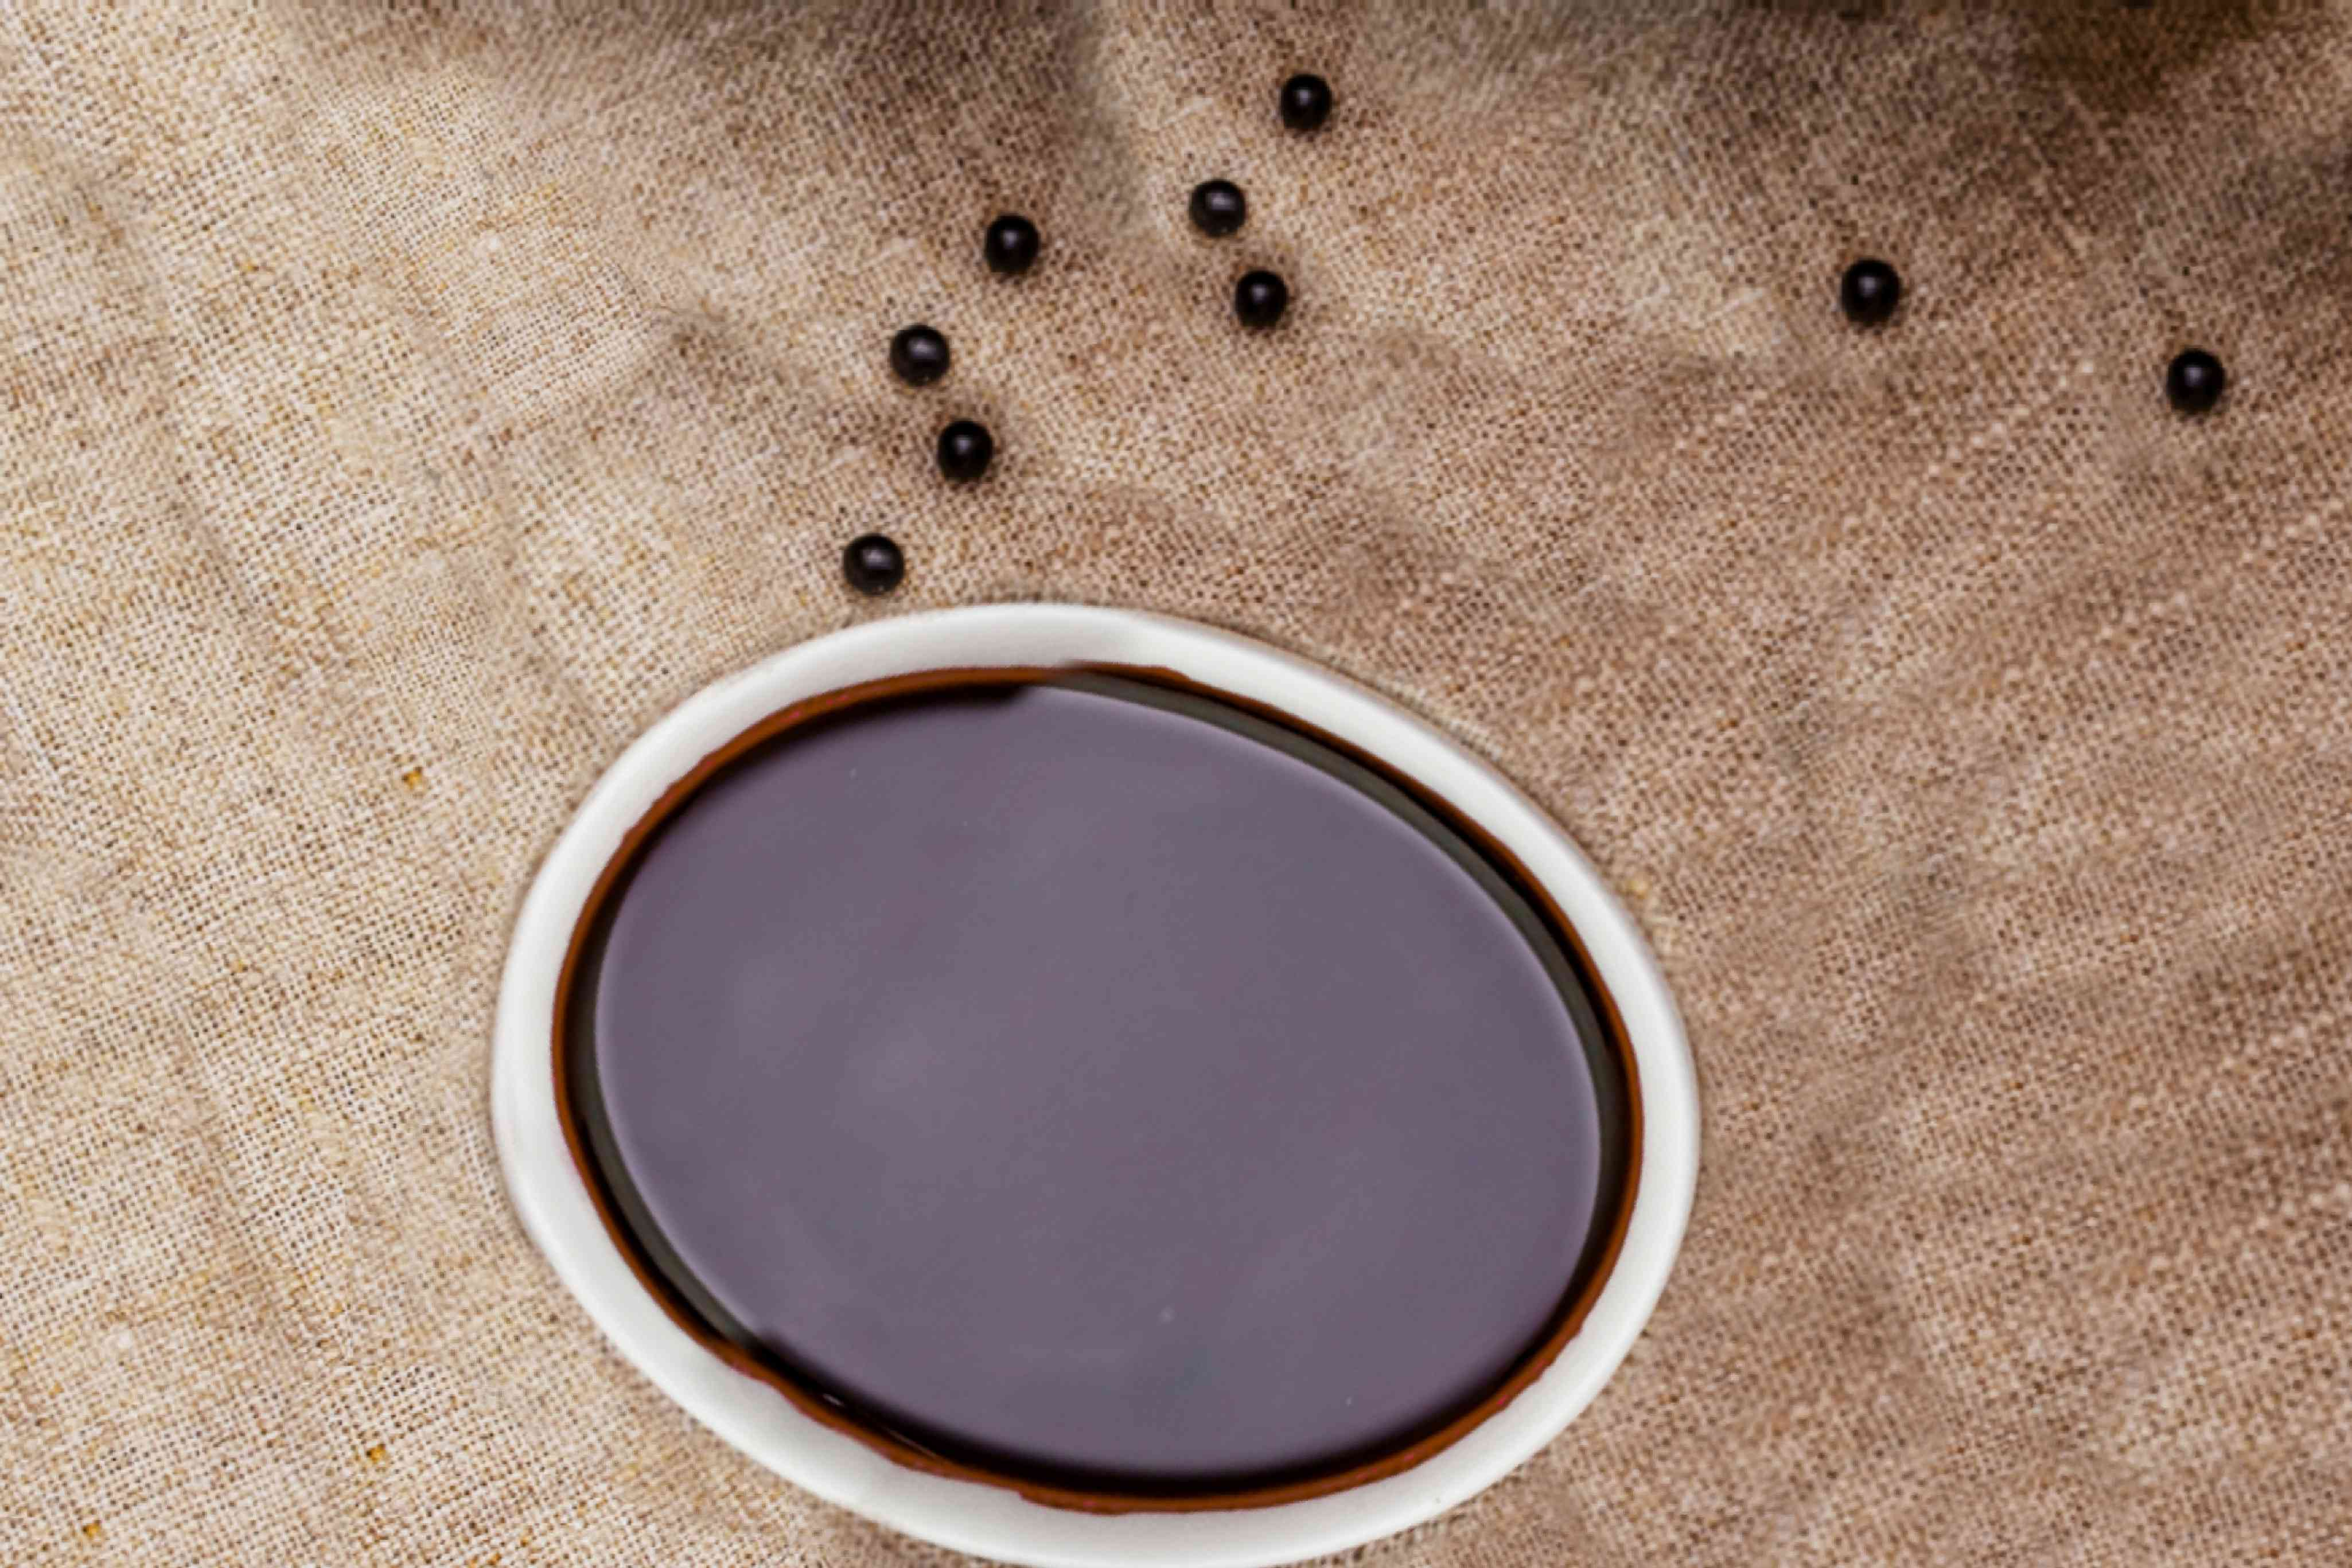 Elderberry syrup in a bowl